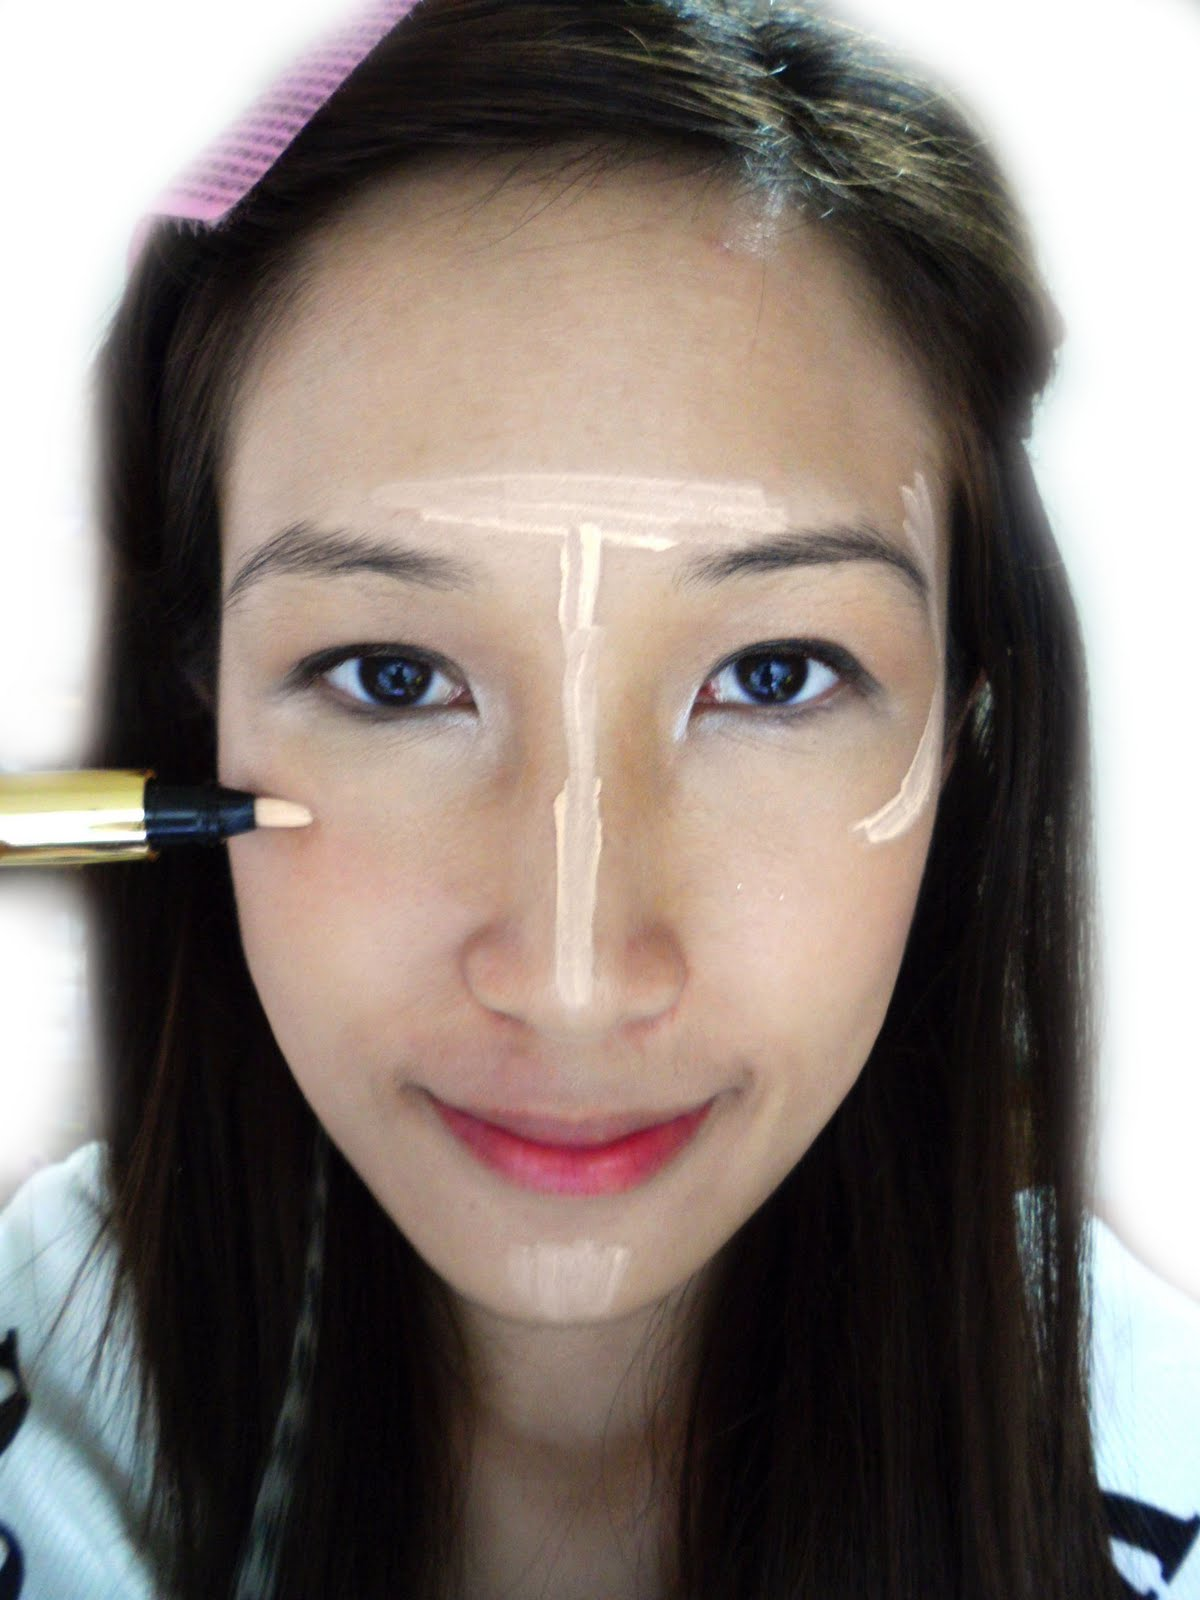 Ulzzang Makeup Tips: All She Ever Wanted: FOTD: Clean And Natural With Ulzzang